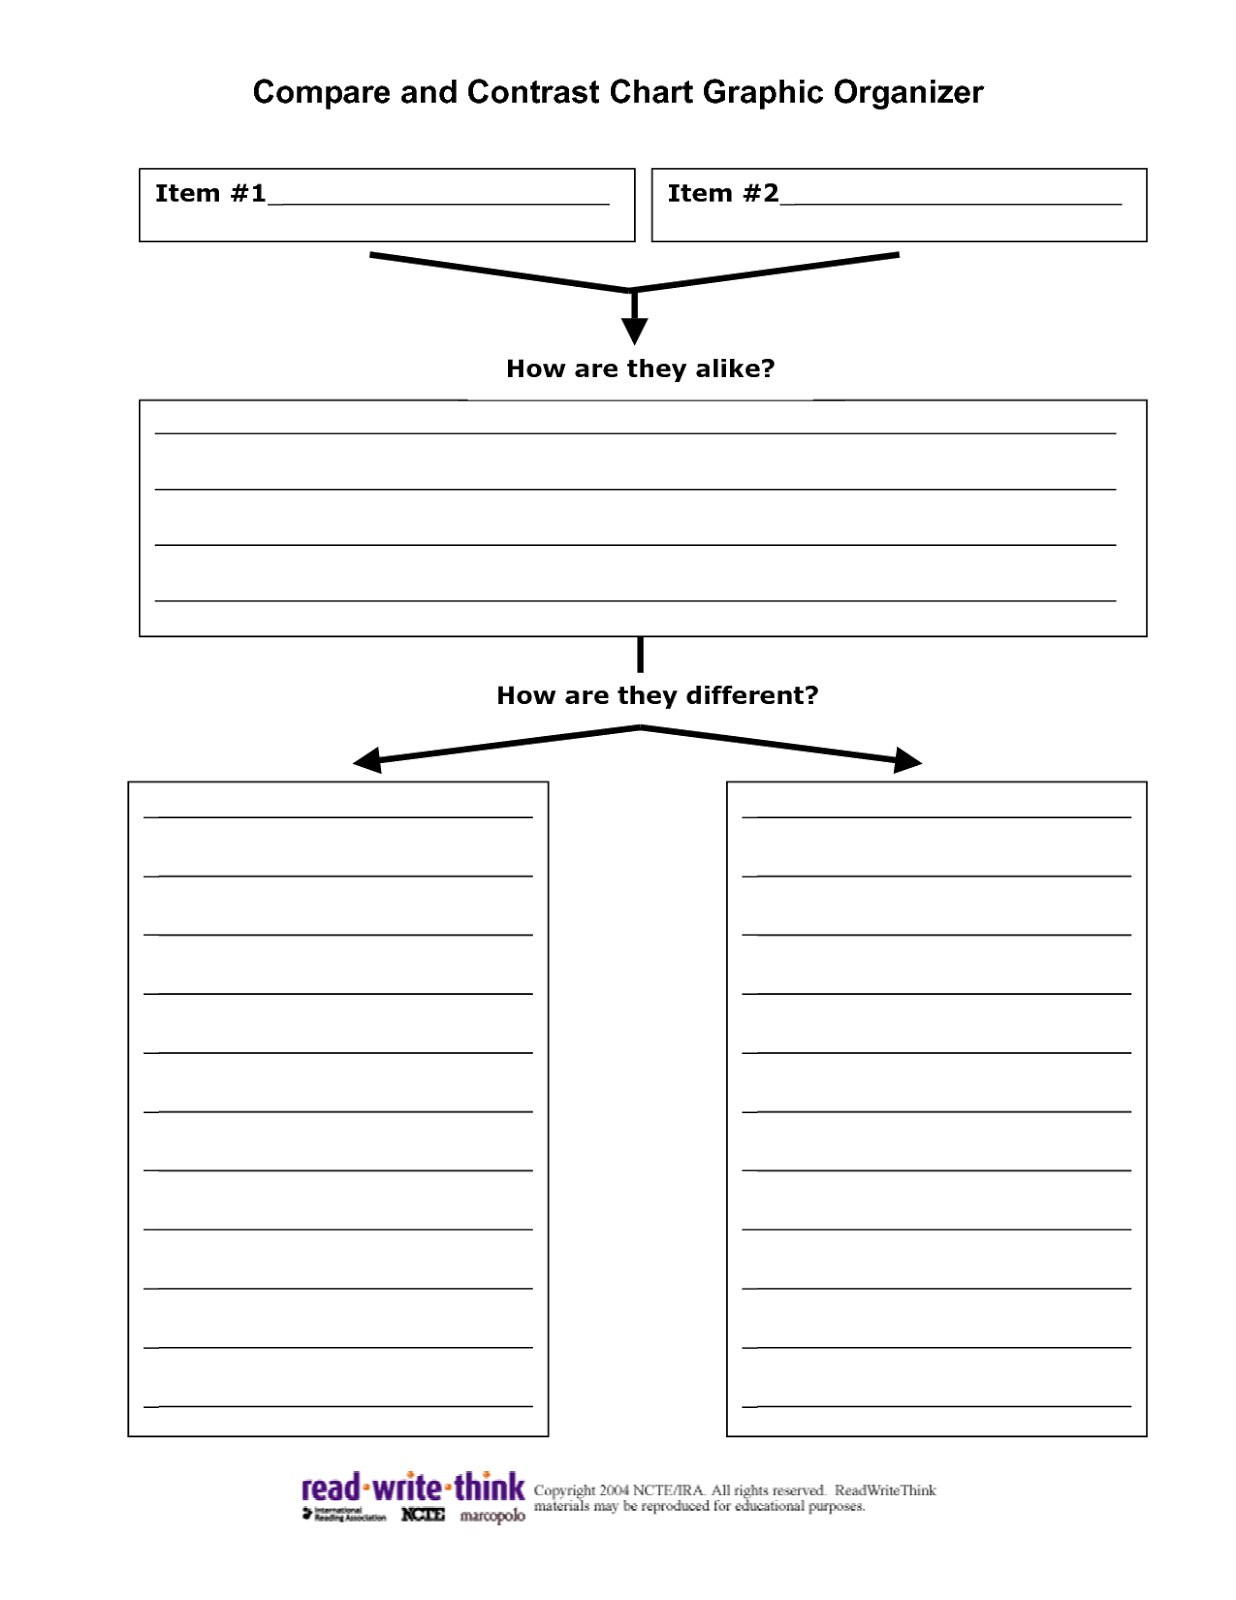 compare and contrast graphic organizer template the uncommon corps in praise of graphic organizers